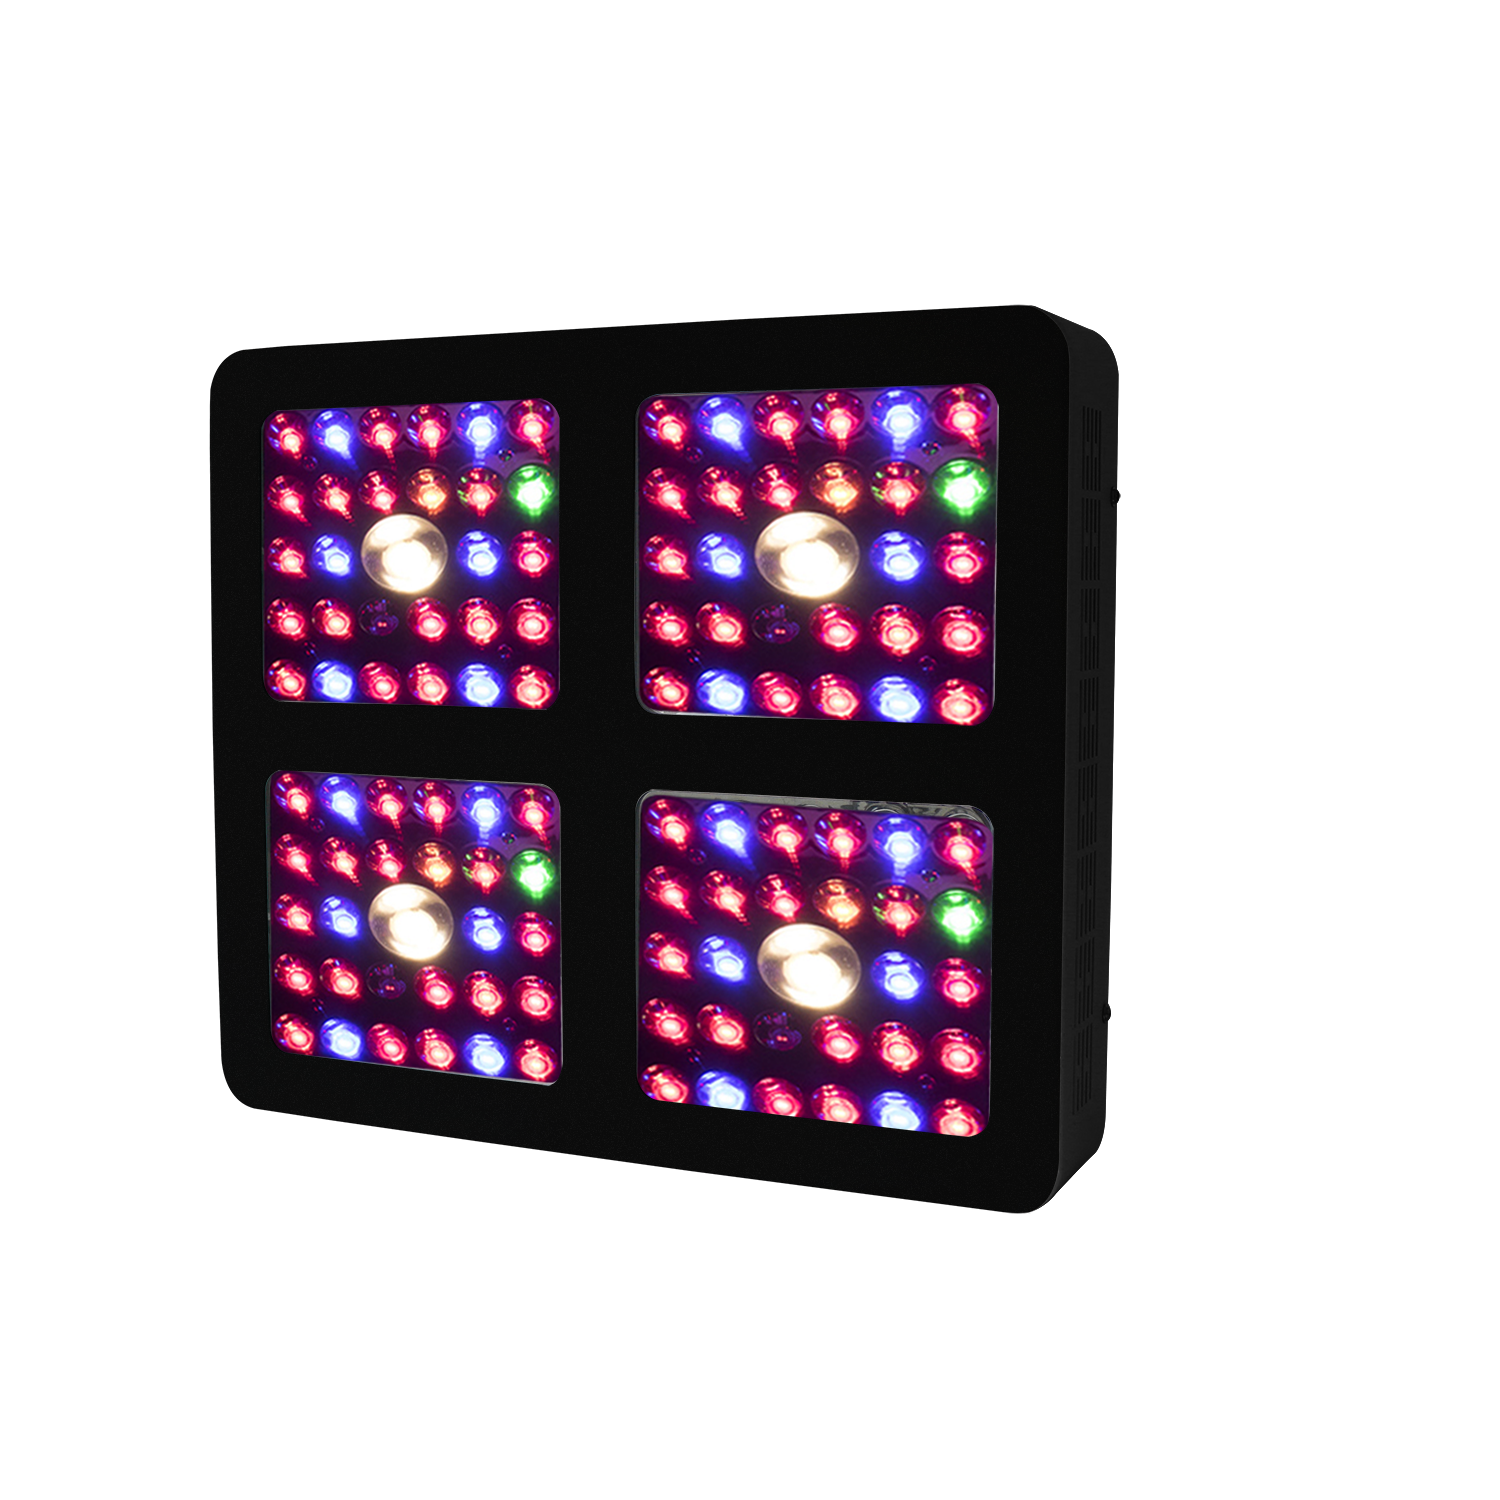 S1200 <strong>Cree</strong> LED Grow Lights Indoor Plants Lamp with Daisy Chain